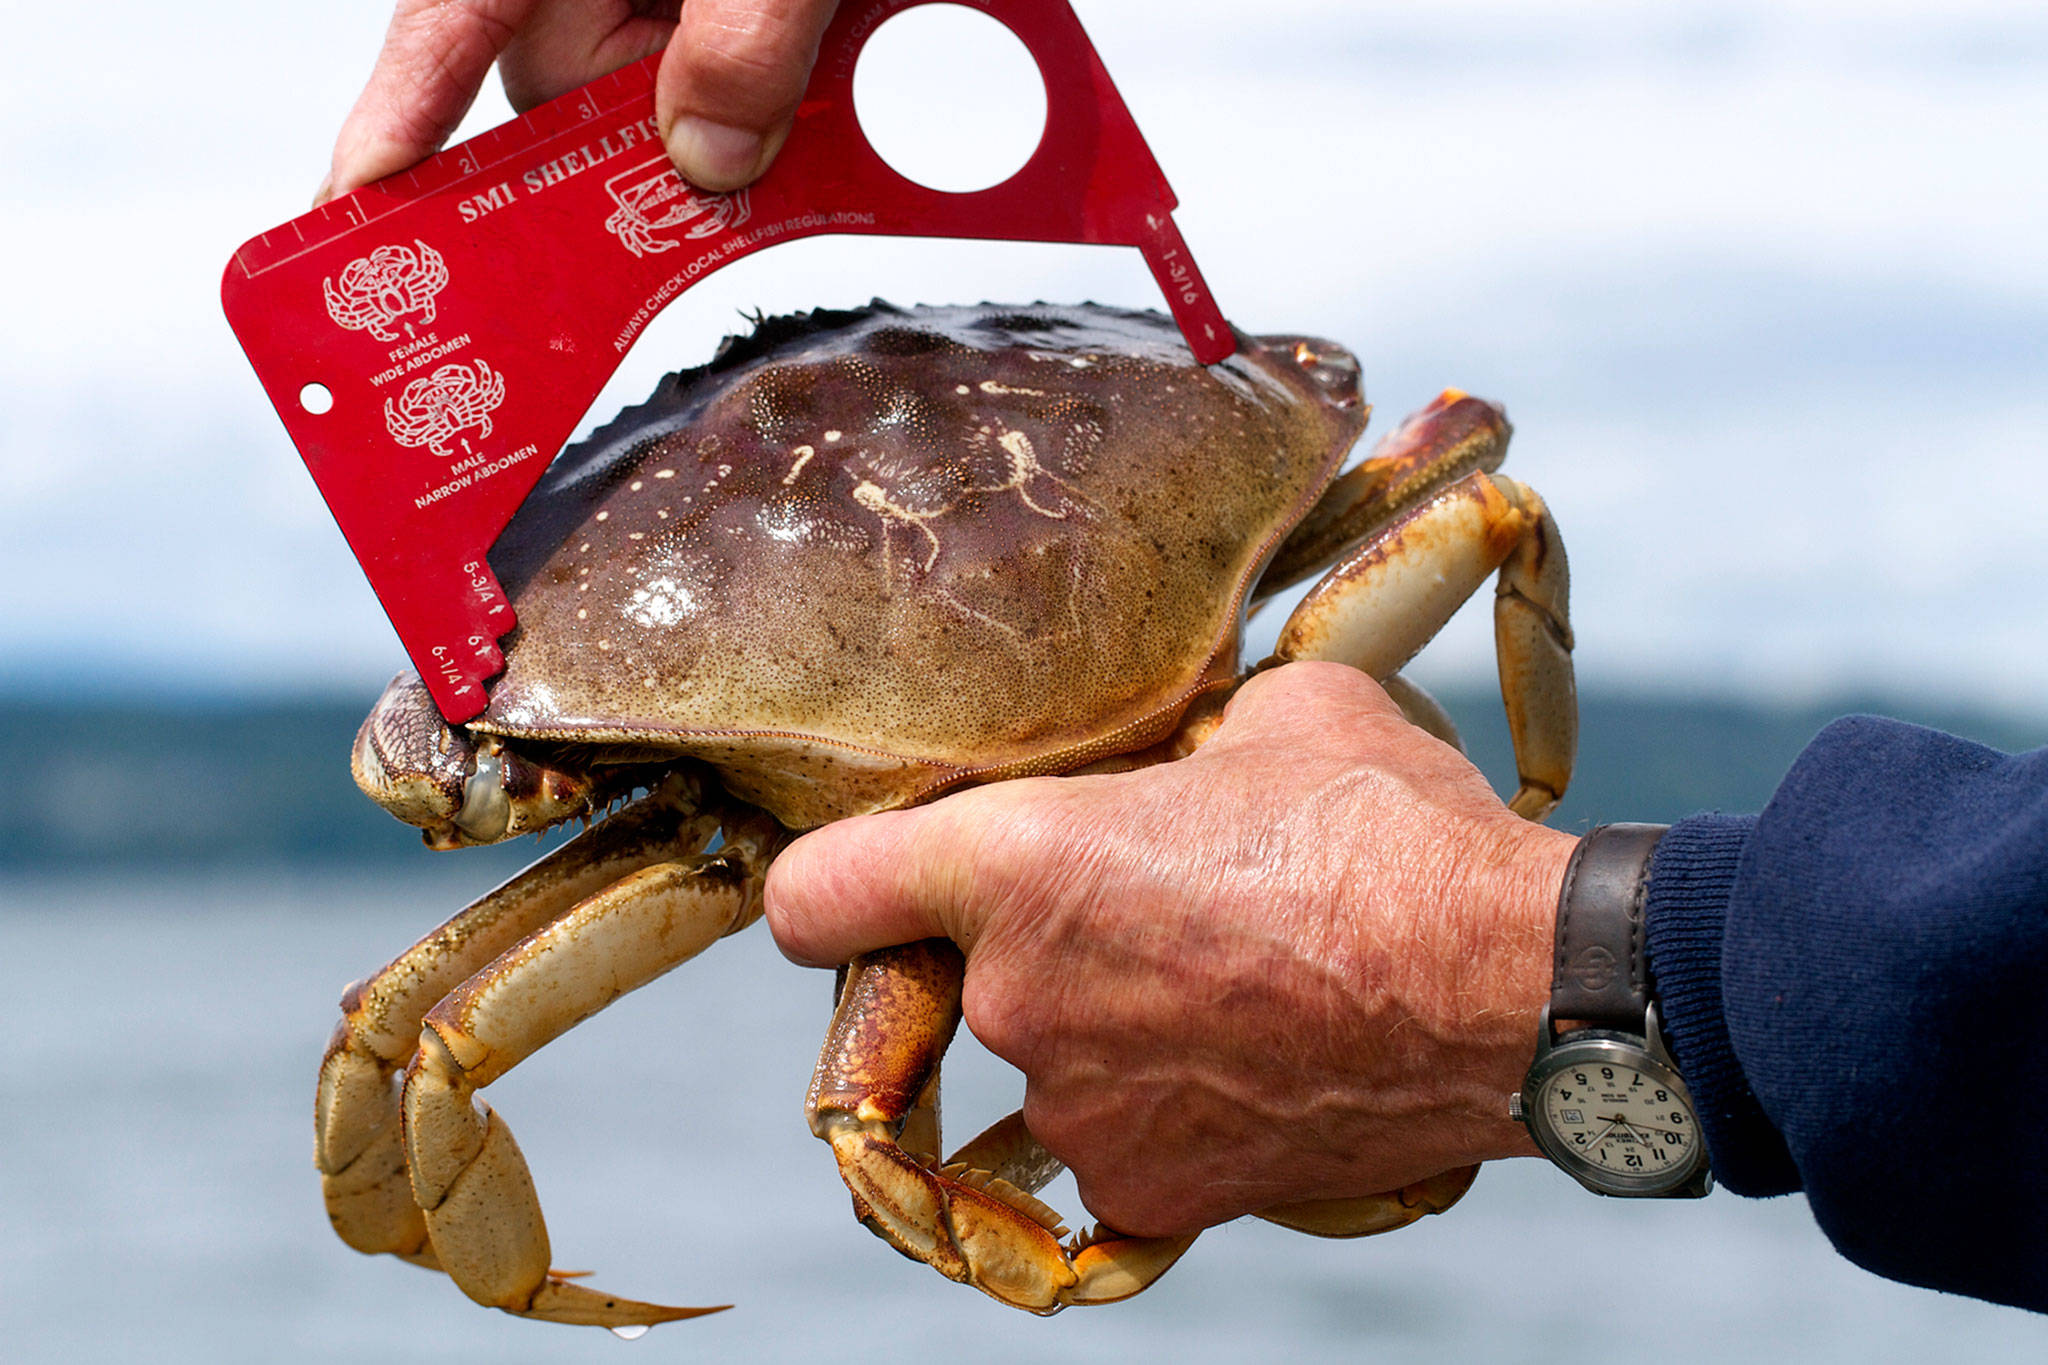 Crabbers need a special tool to quickly check the size of their catch. (Mike Benbow photo)